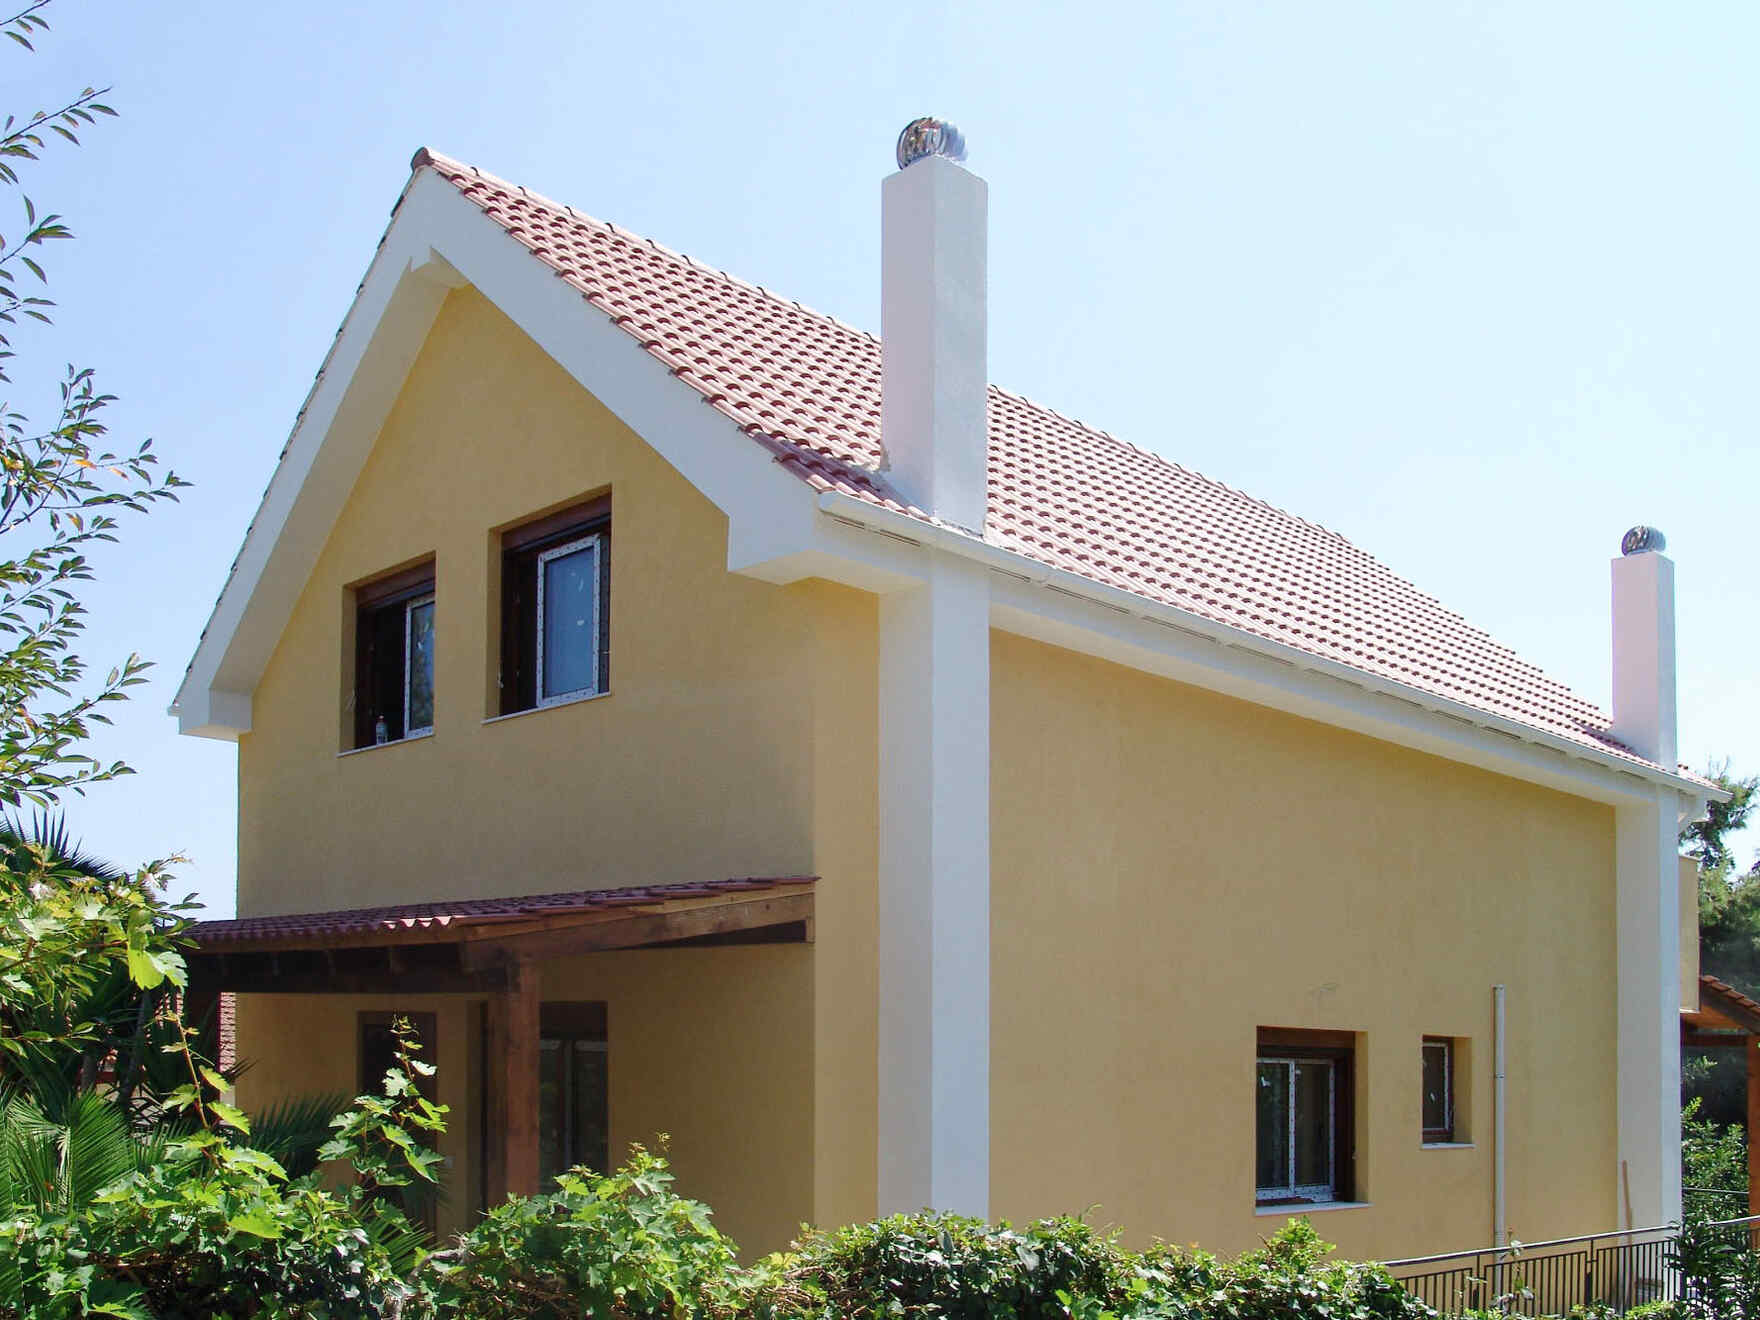 Prefabricated house Familie Korakis